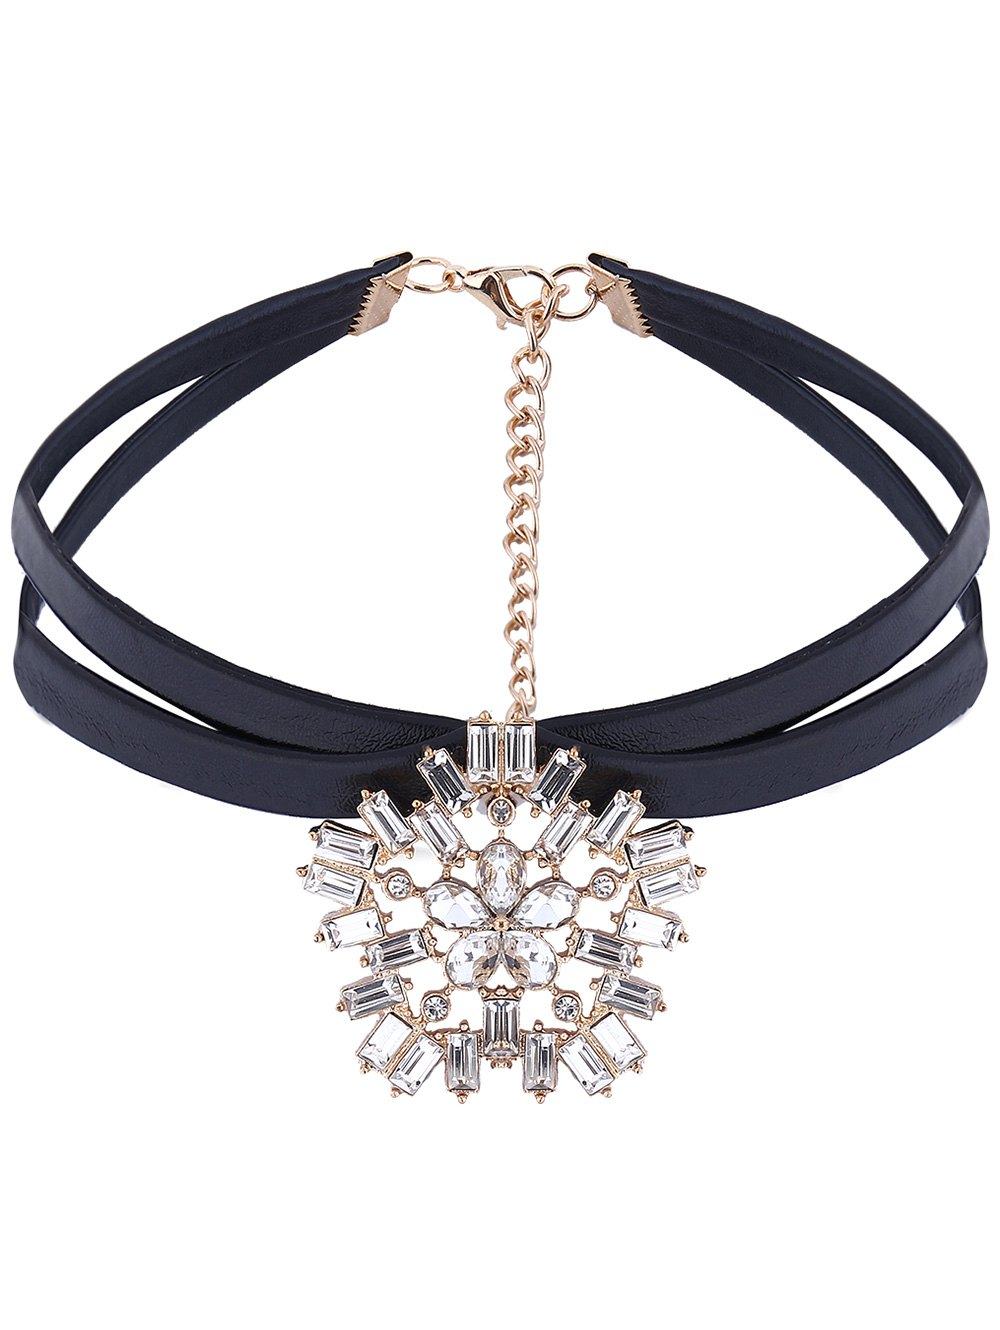 PU Leather Floral Rhinestone Choker